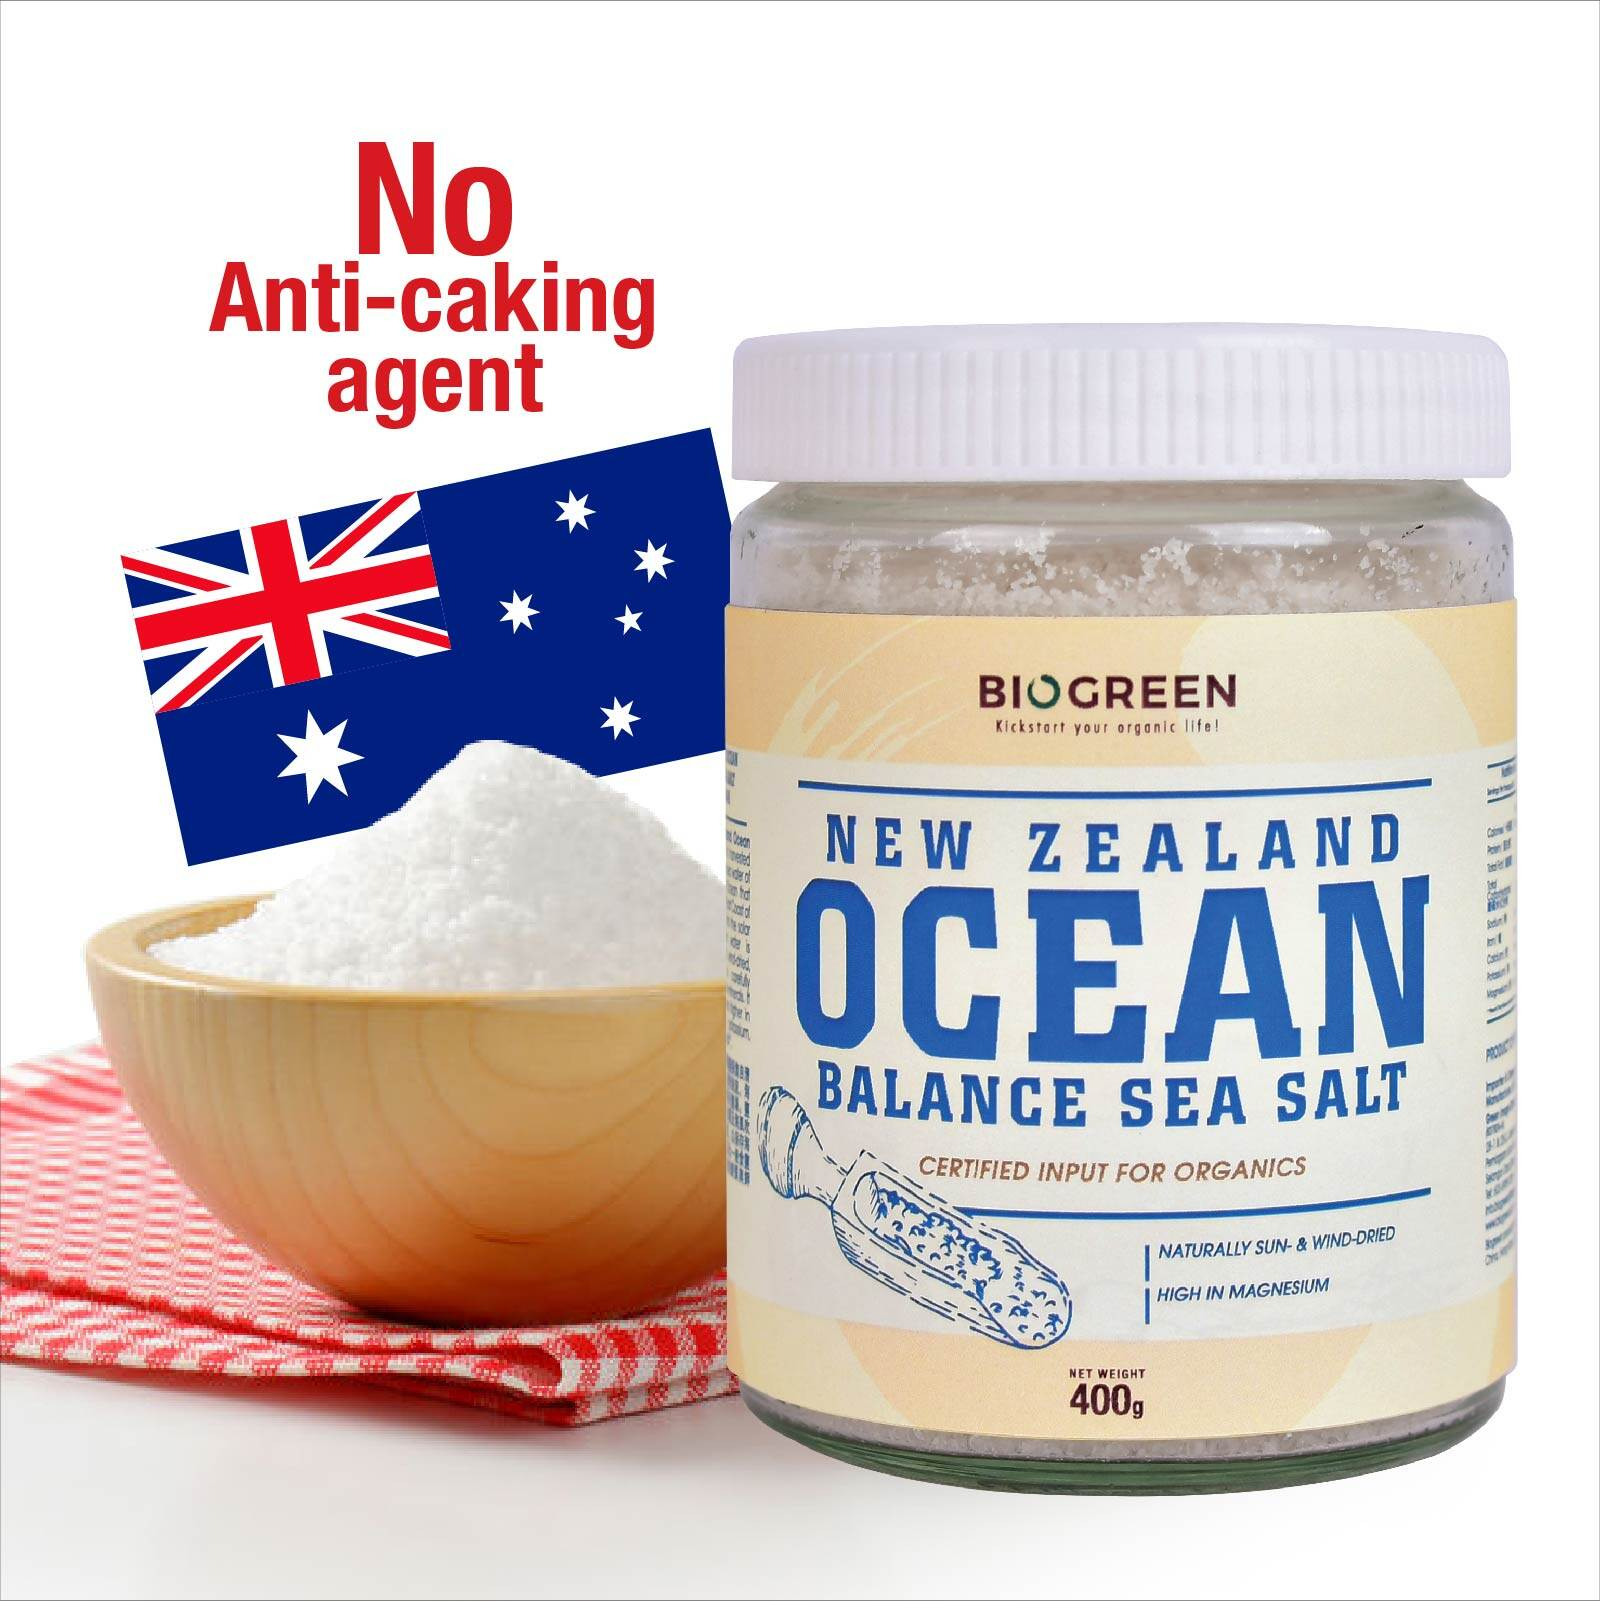 Biogreen New Zealand Ocean Balance Sea Salt 400g (HALAL)